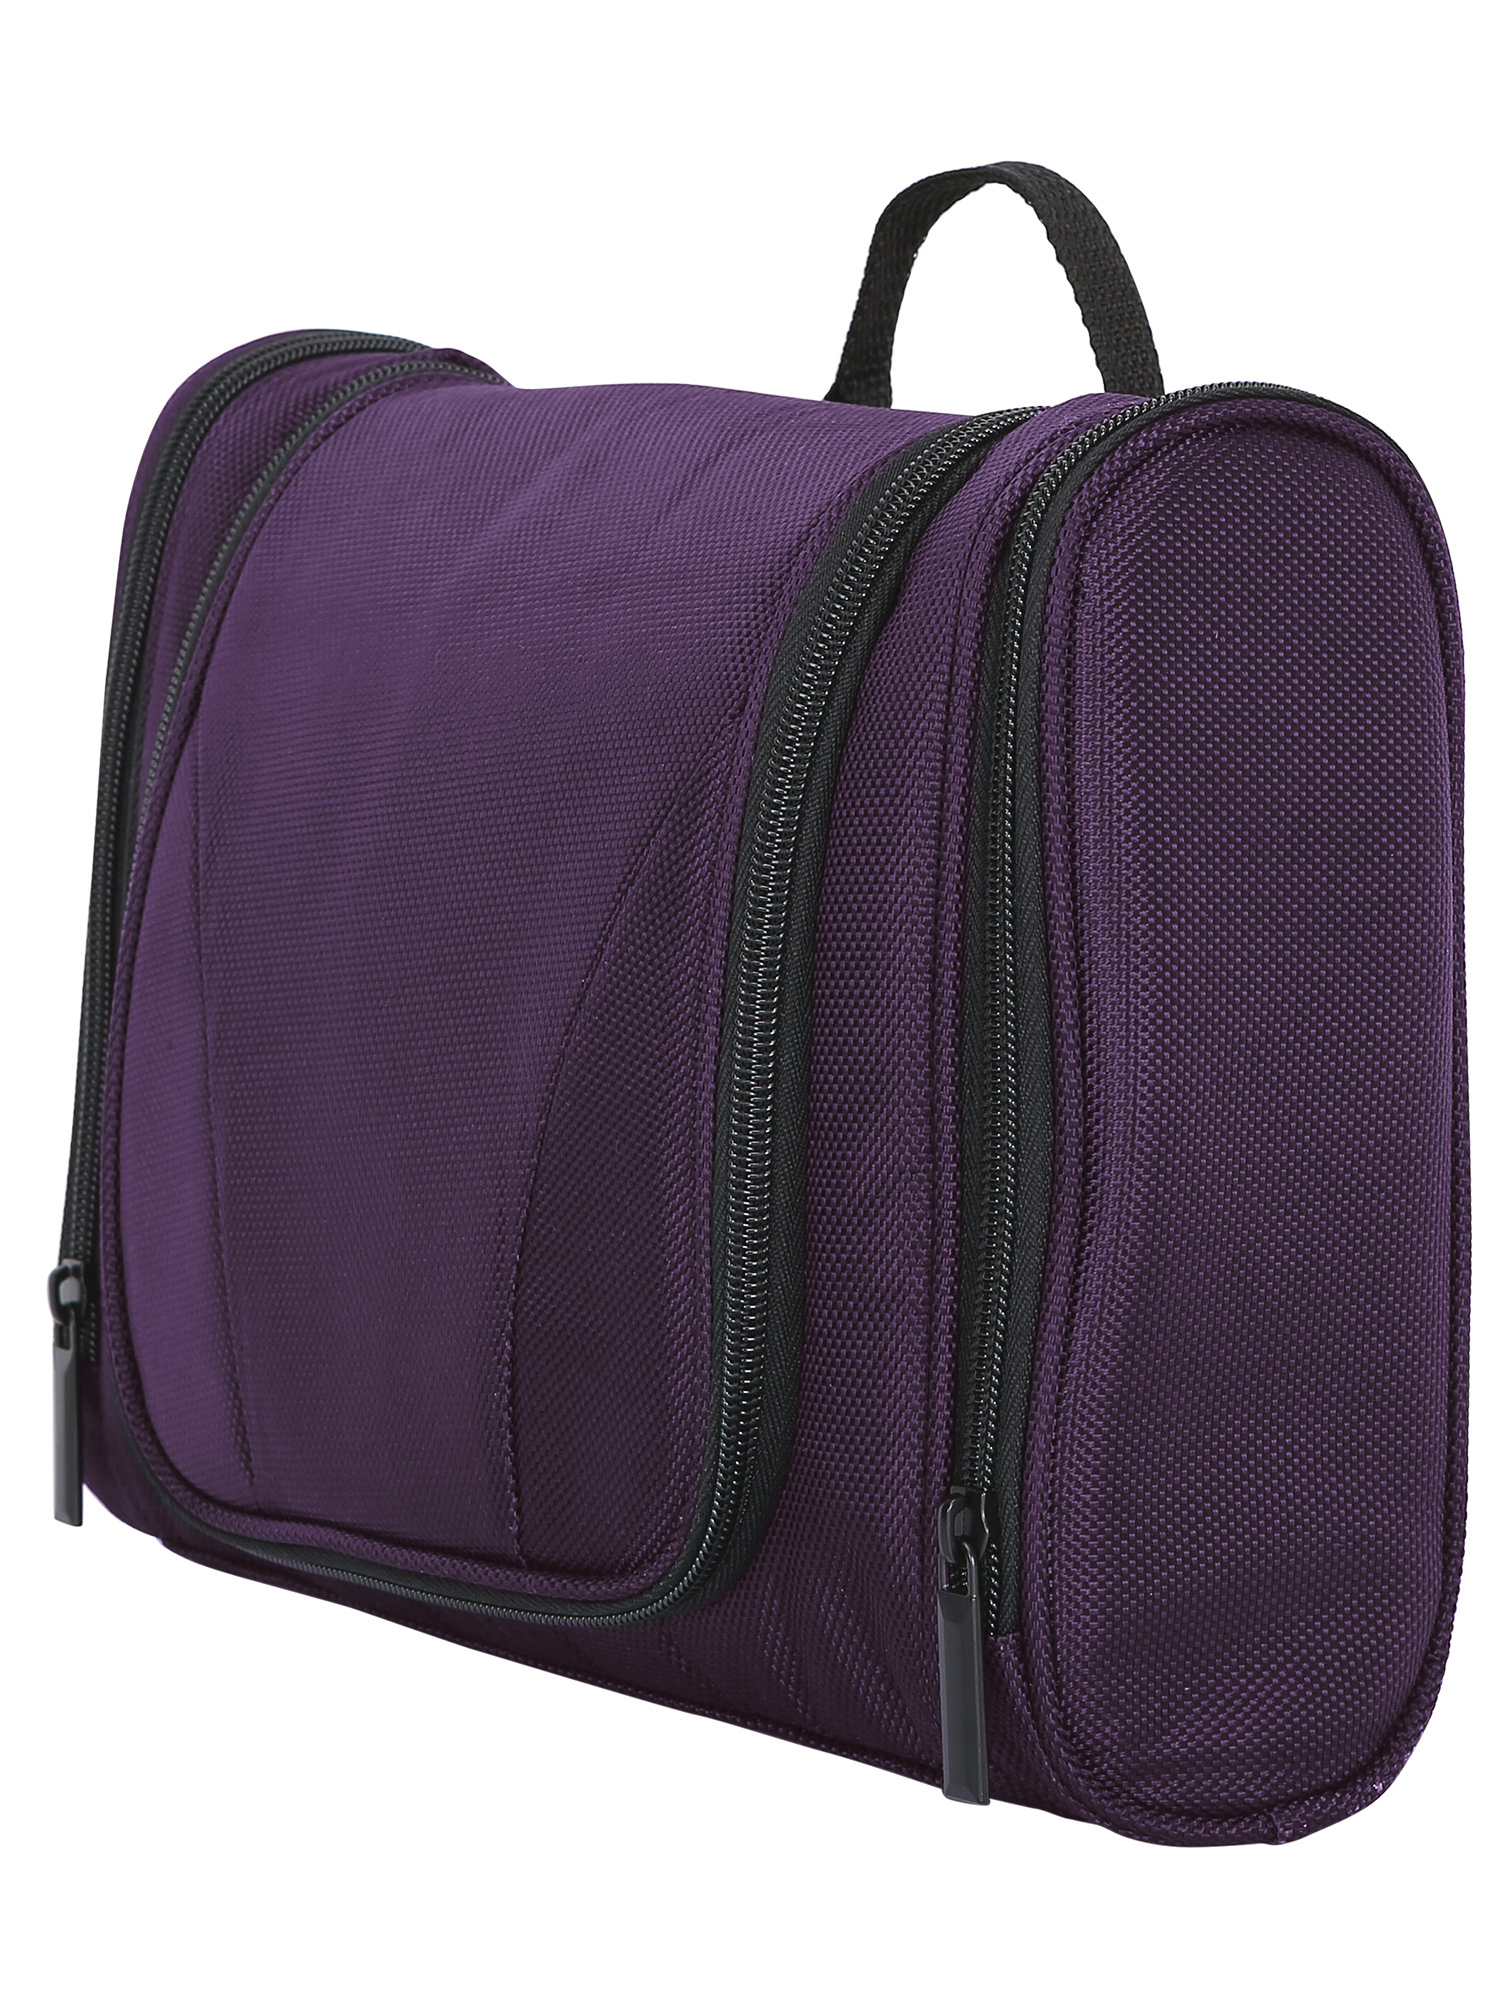 American Tourister Toiletry Kit